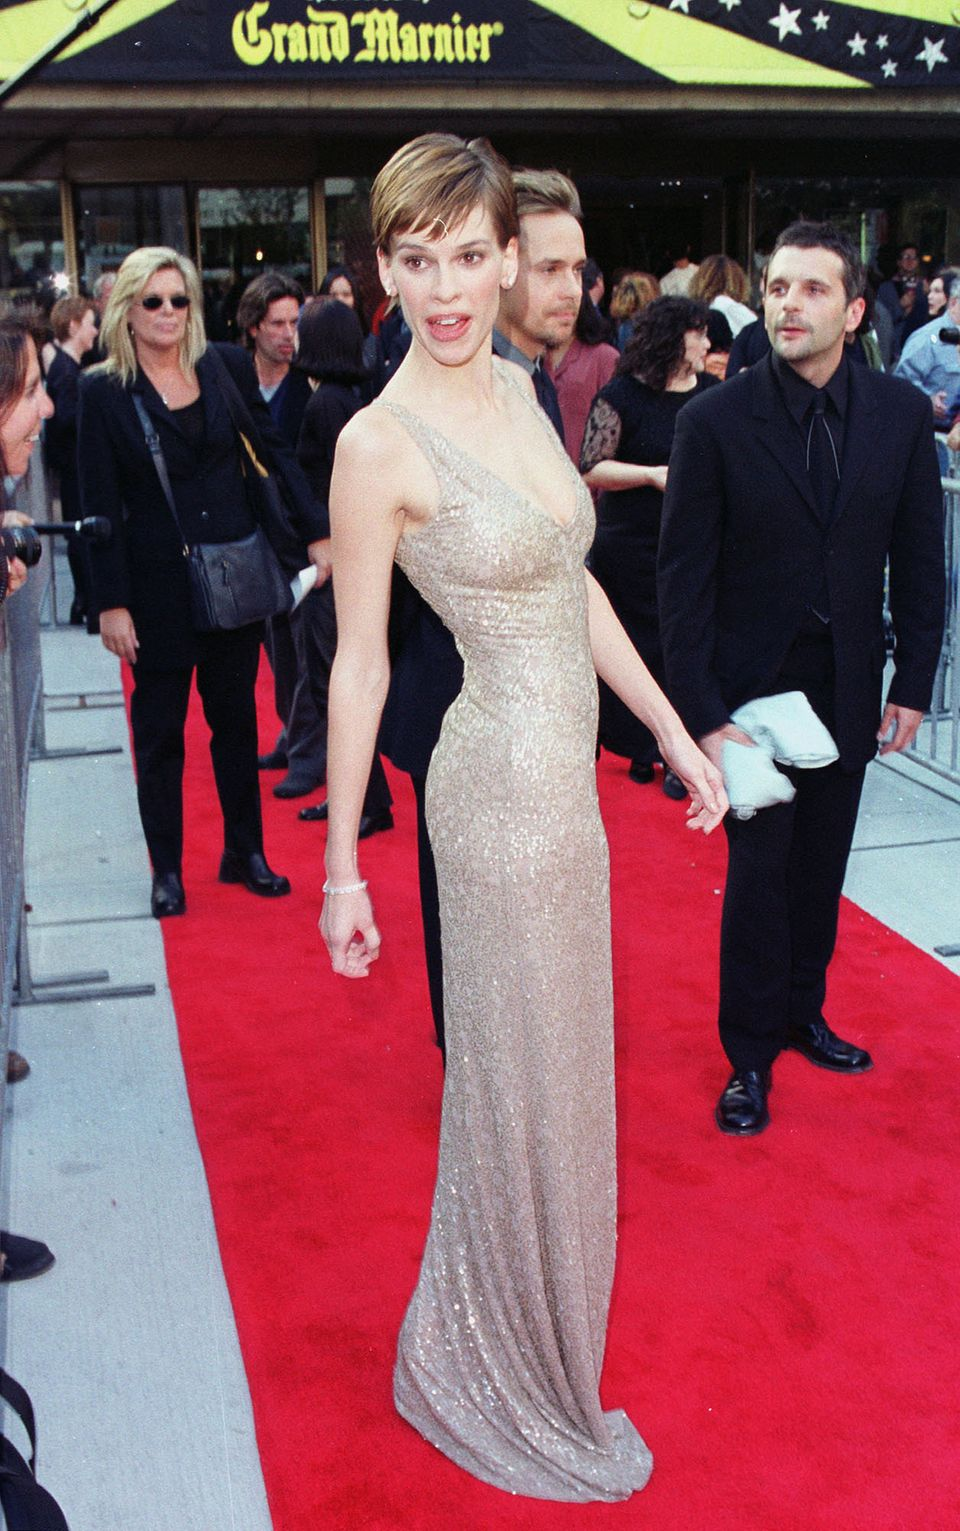 Hilary Swank attends the premiere in 1999.